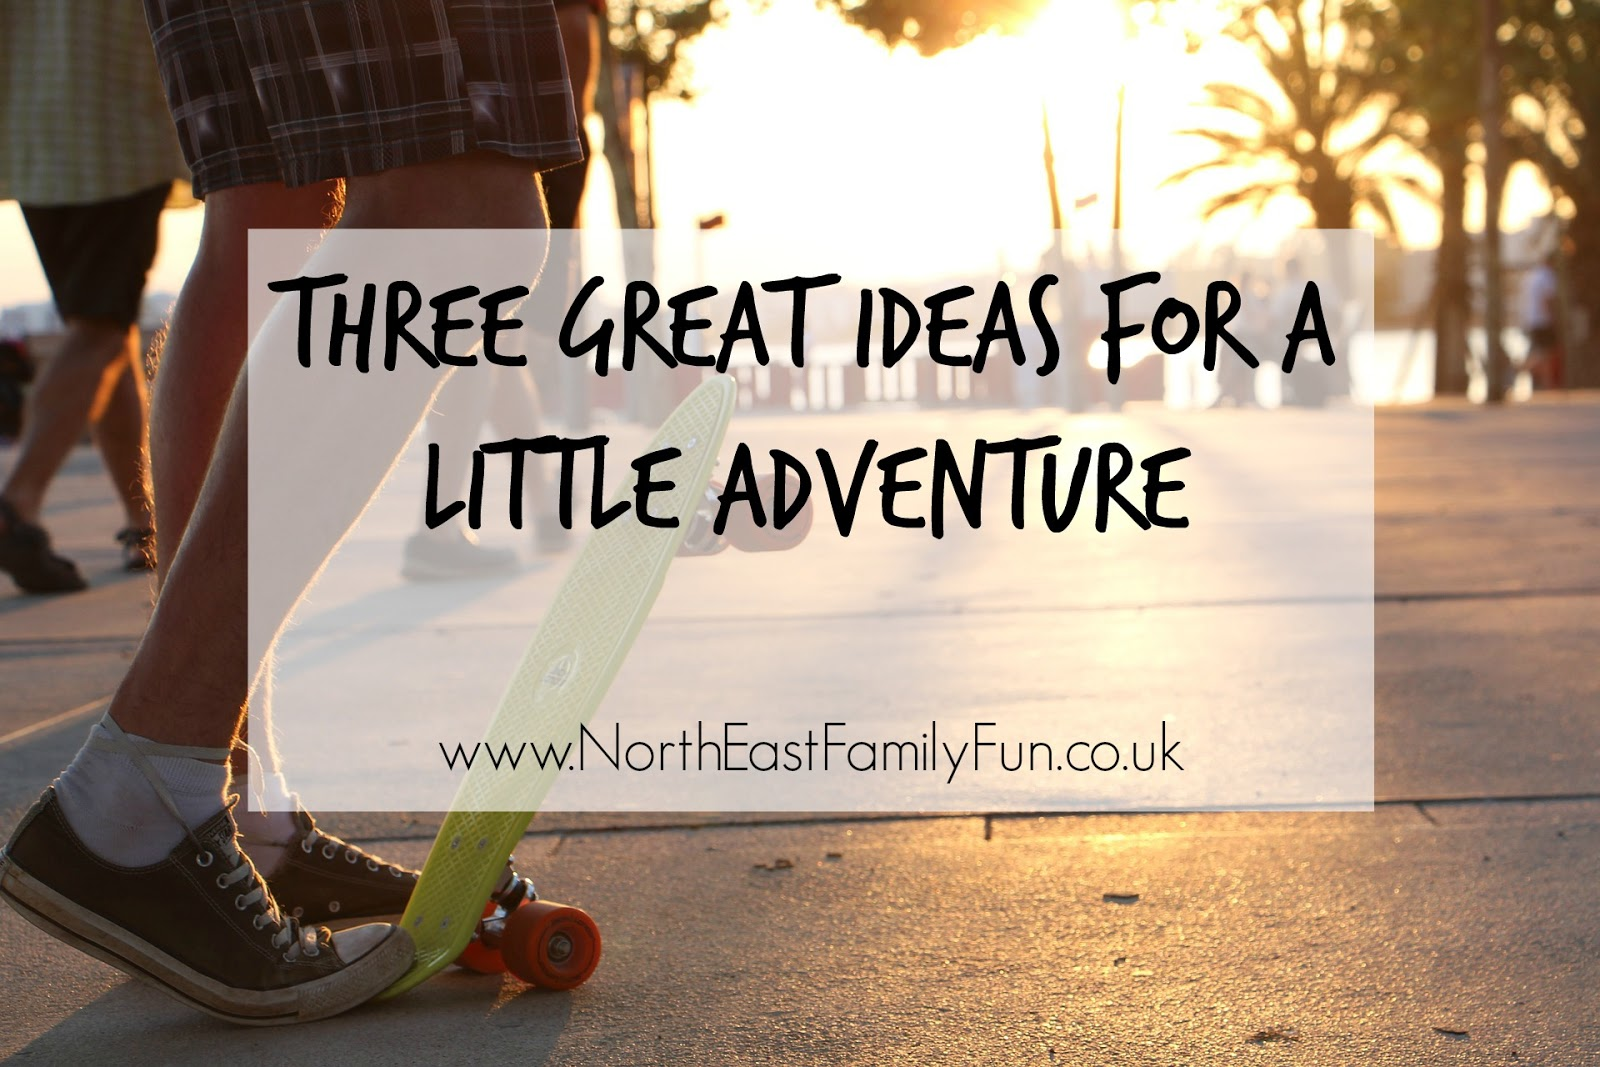 Three great ideas for a little adventure